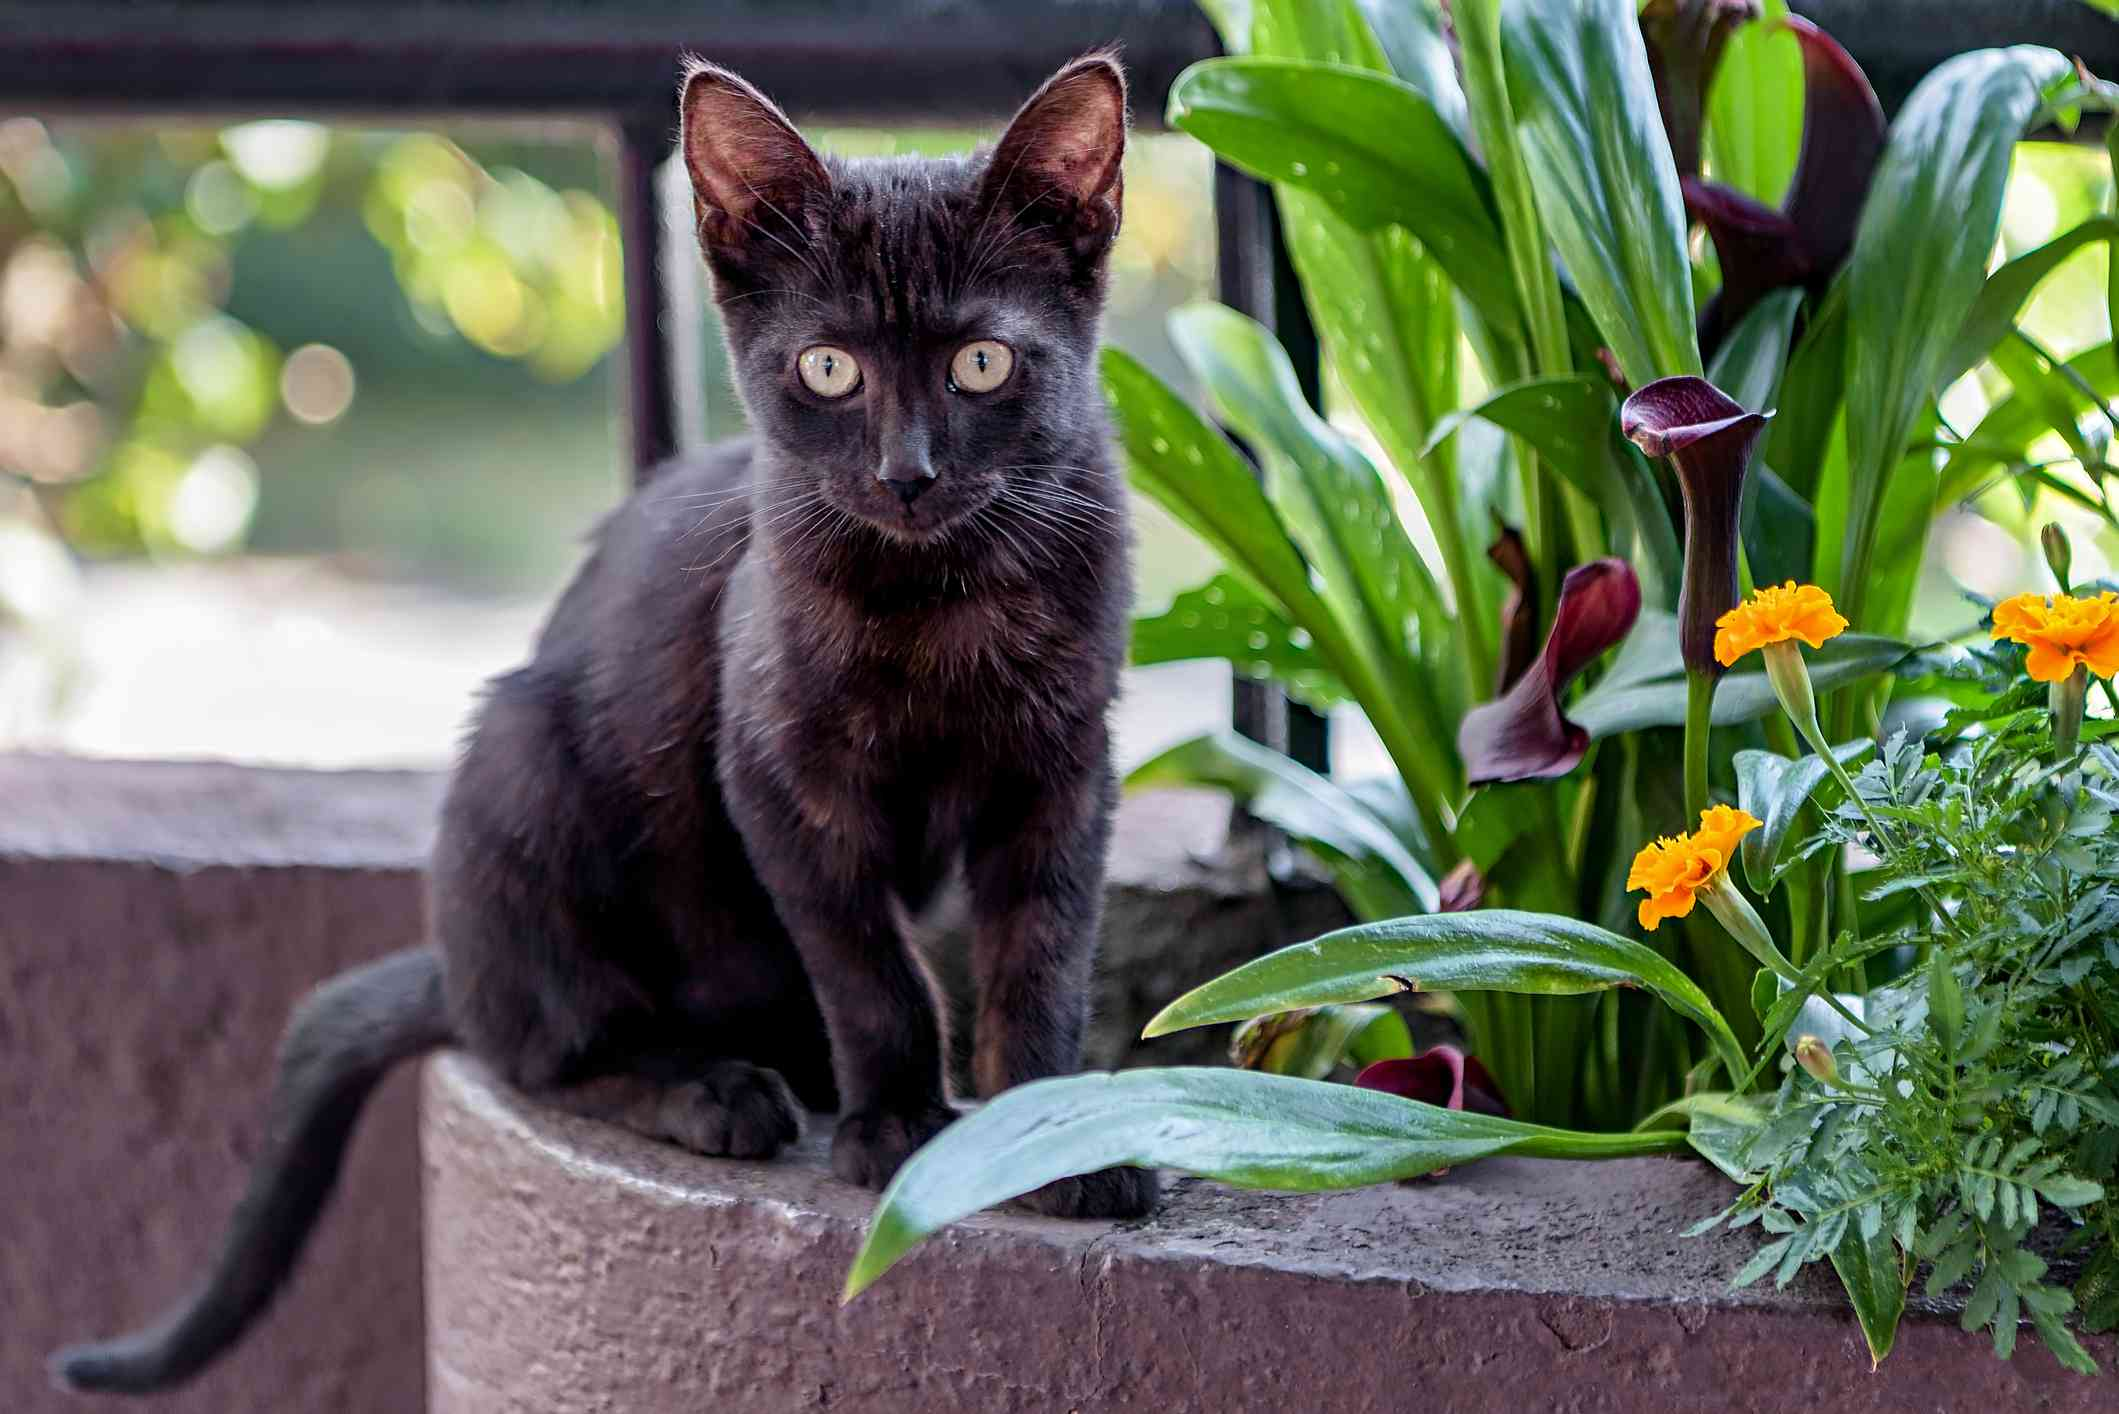 A small black cat with large eyes